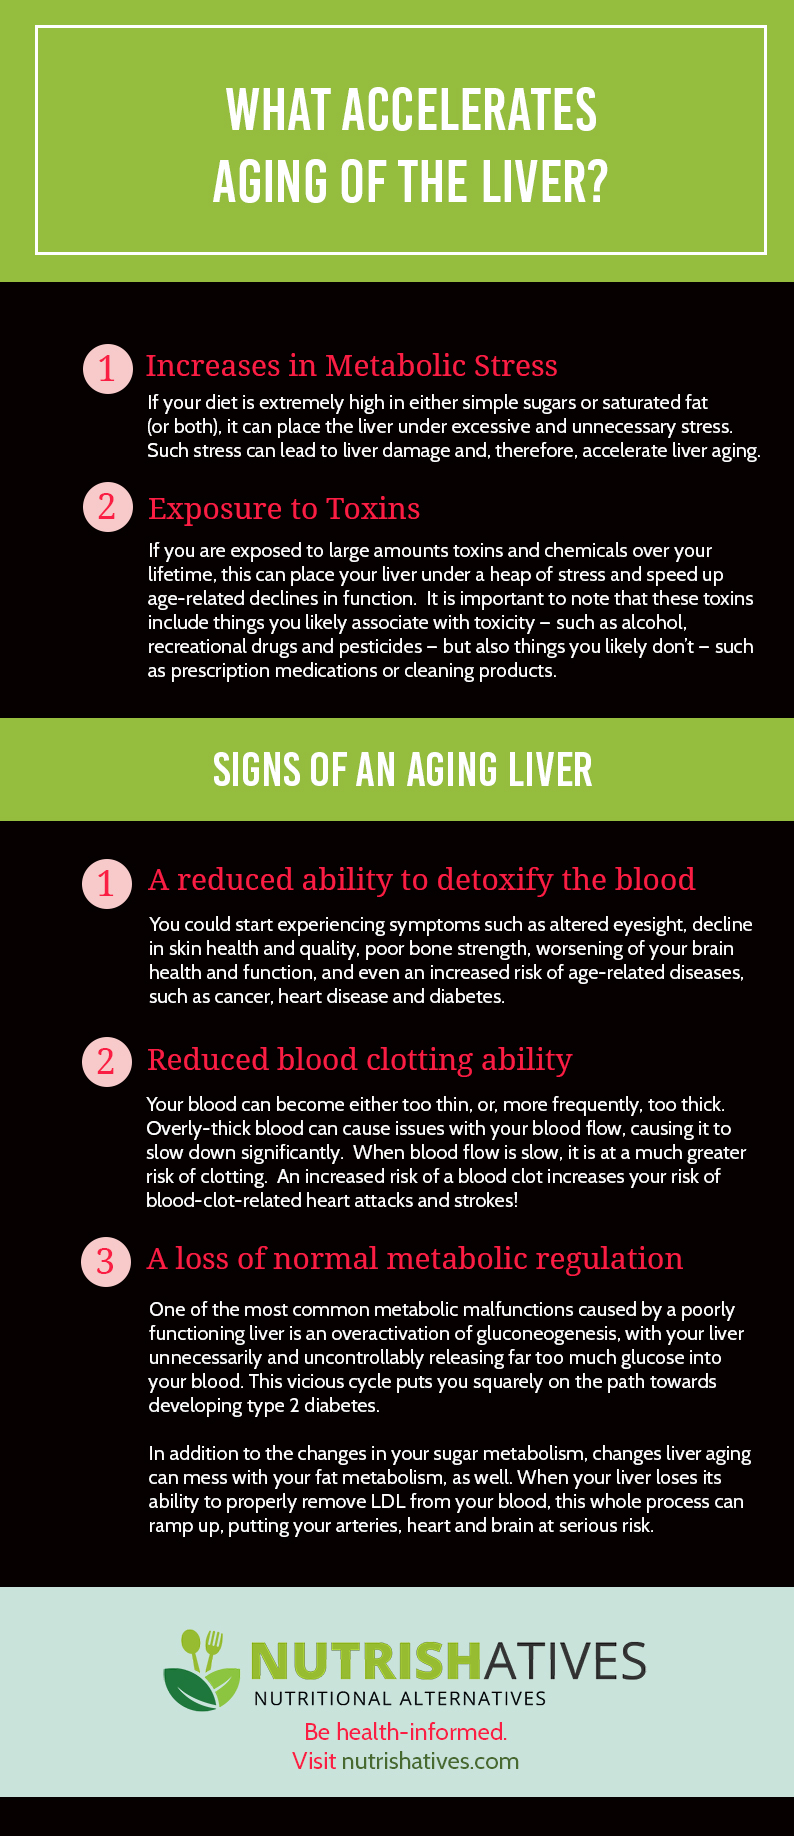 What Accelerates Aging of the Liver